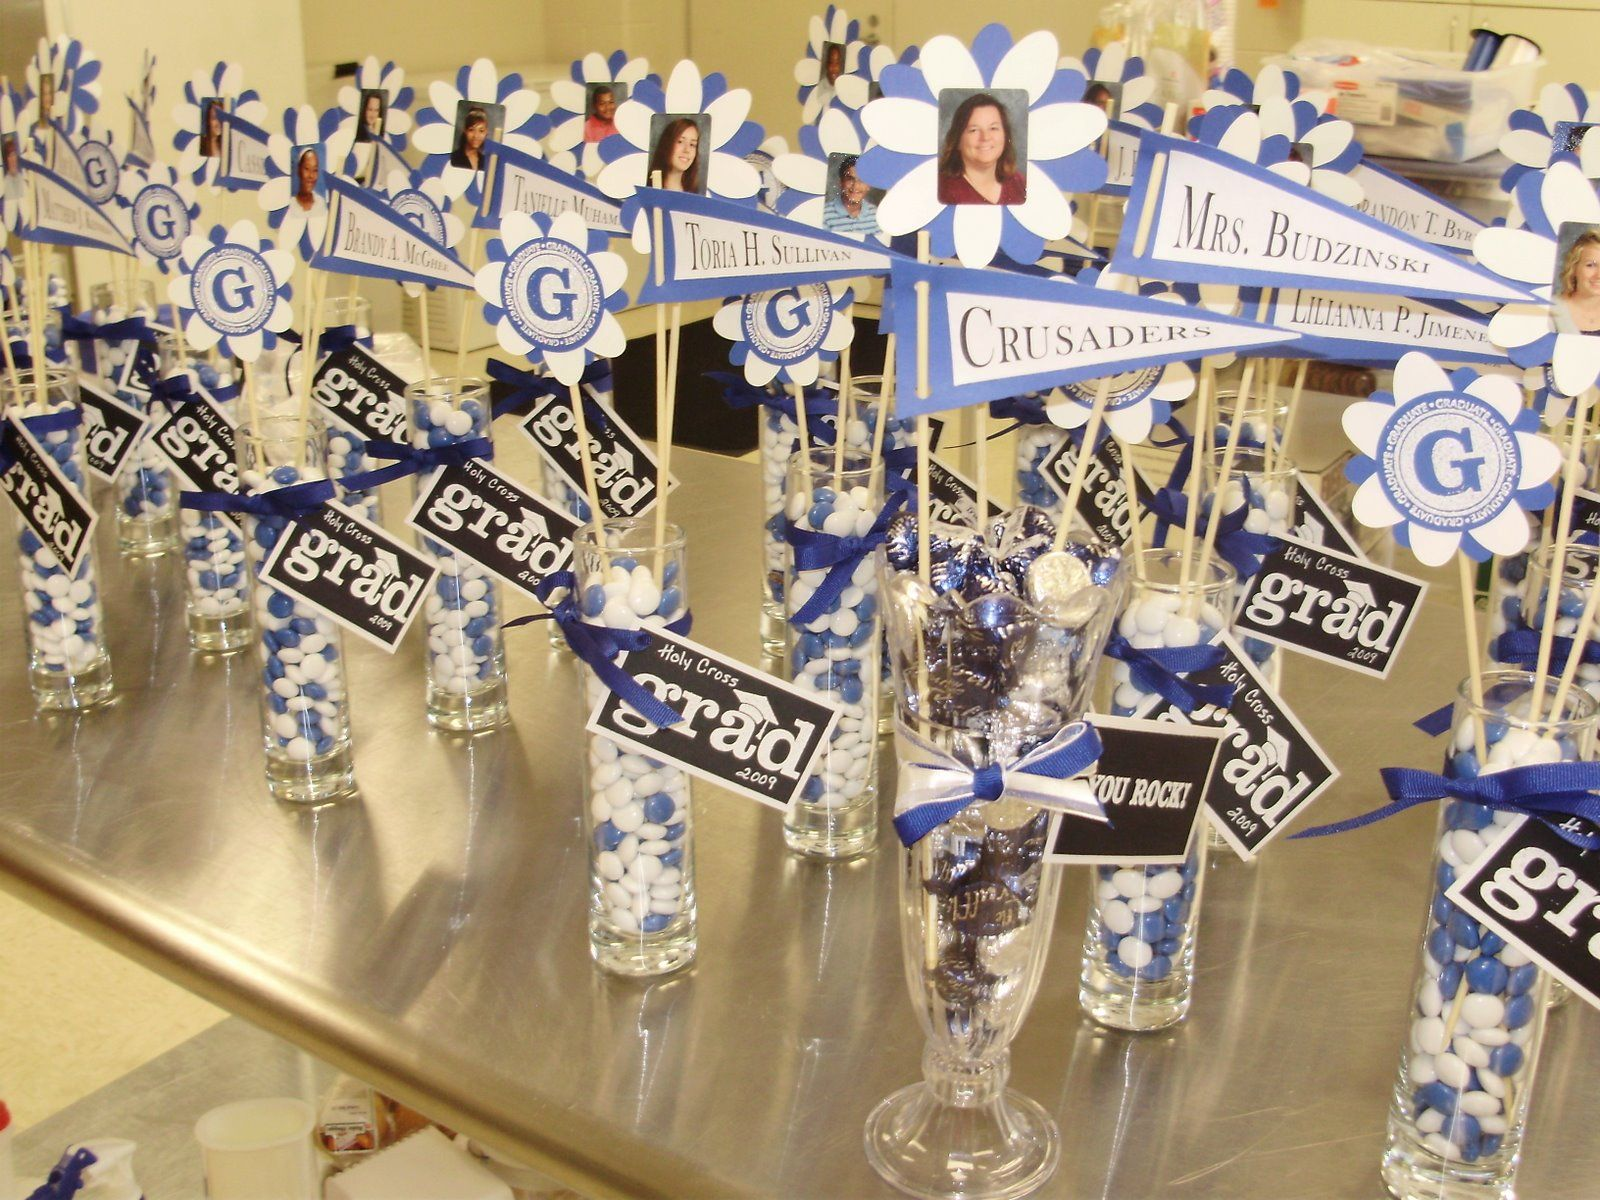 Graduation Party Centerpieces Ideas Here Are Some General Tips For